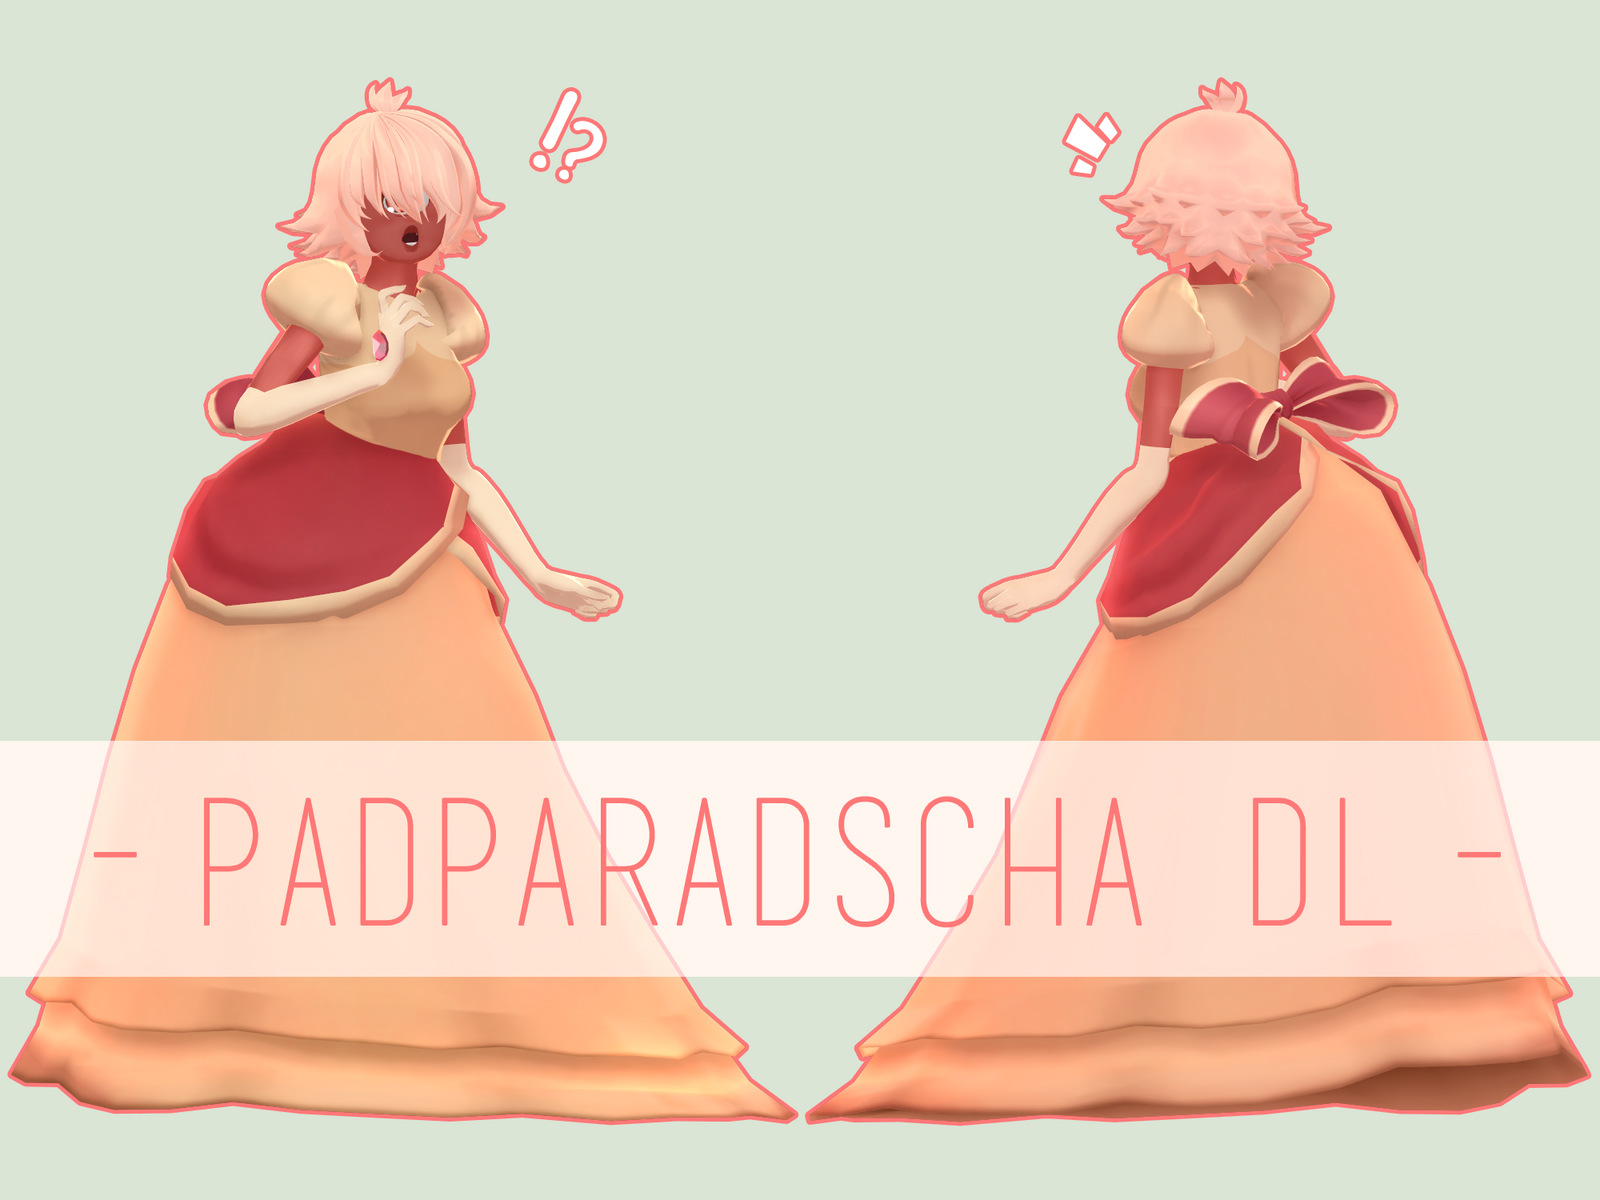 s padparadscha lotfinder details sapphire hgk christie di a and ring lot diamond pad